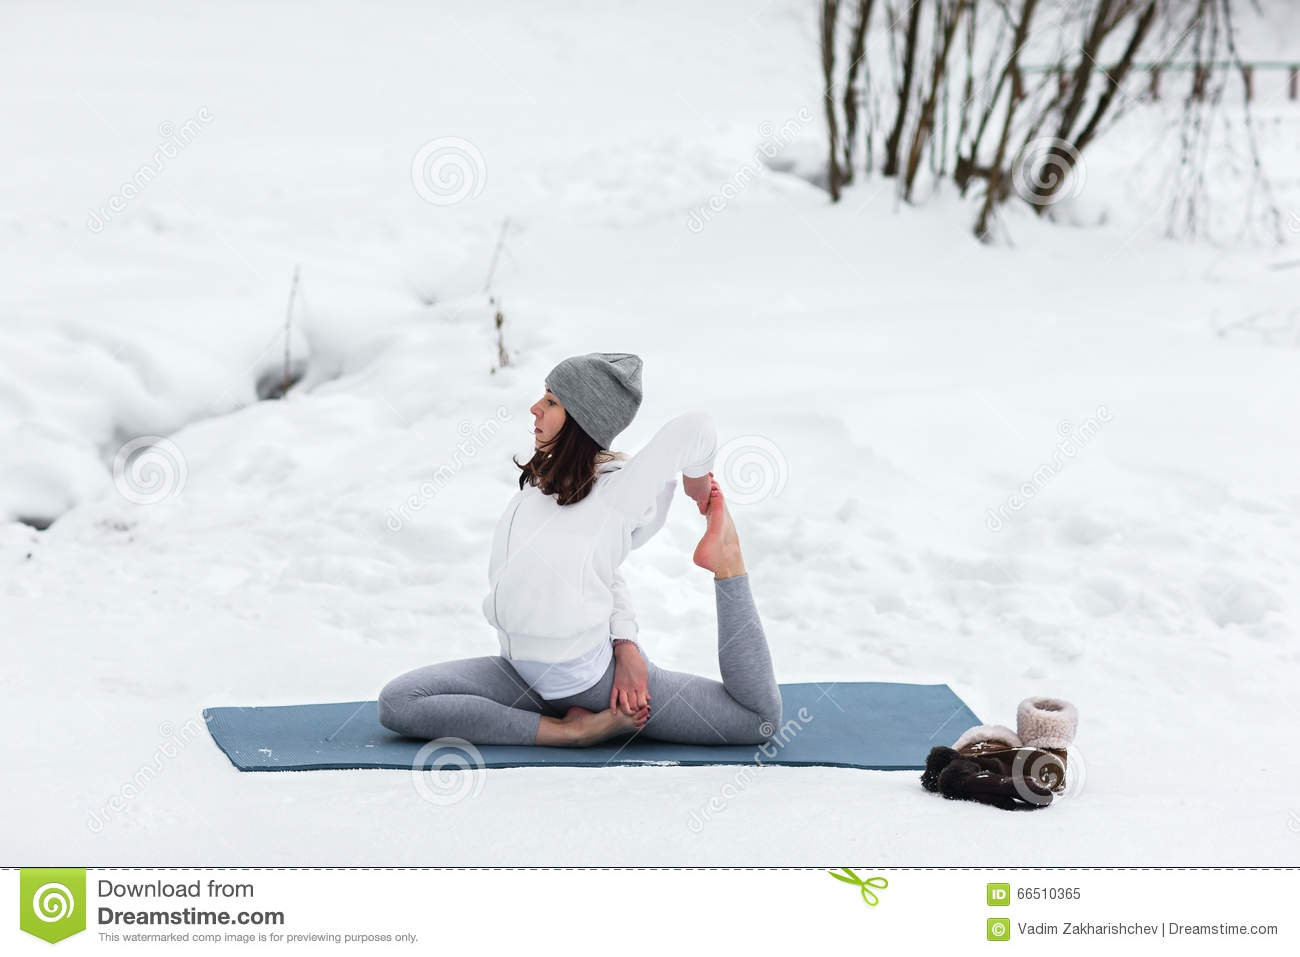 https://thumbs.dreamstime.com/z/winter-yoga-session-beautiful-place-young-athletic-woman-doing-woods-girl-engaged-fitness-park-66510365.jpg